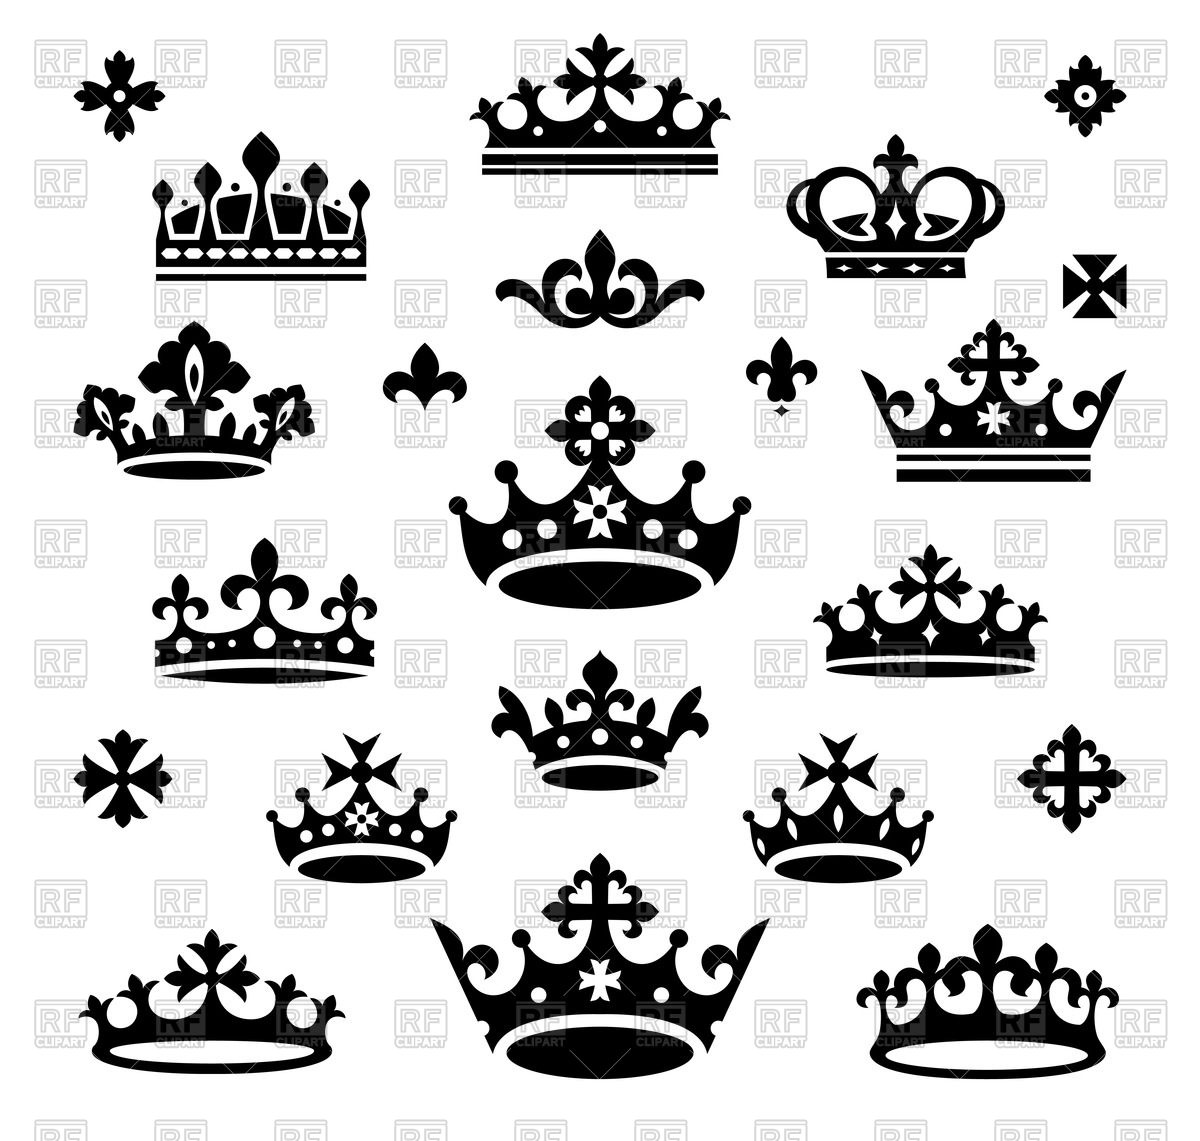 1200x1141 Silhouettes Of Queen And Royal Crown Vector Image Vector Artwork